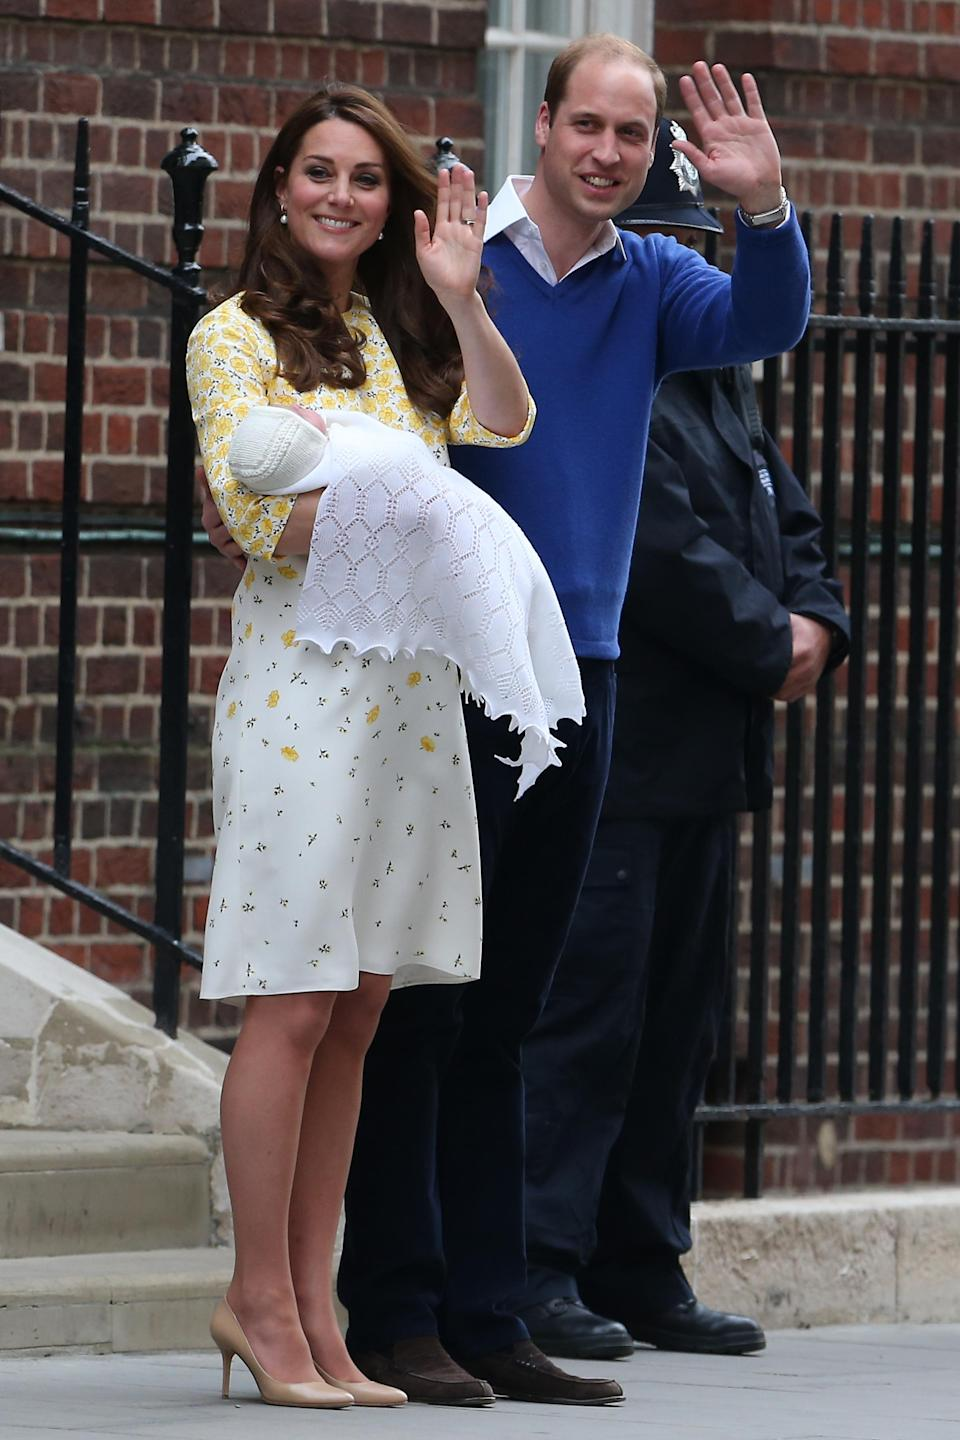 Catherine, Duchess of Cambridge, and Prince William, Duke of Cambridge, depart St. Mary's Hospital in London with their newborn daughter on May 2, 2015. (Photo: Neil Mockford/Alex Huckle/FilmMagic)